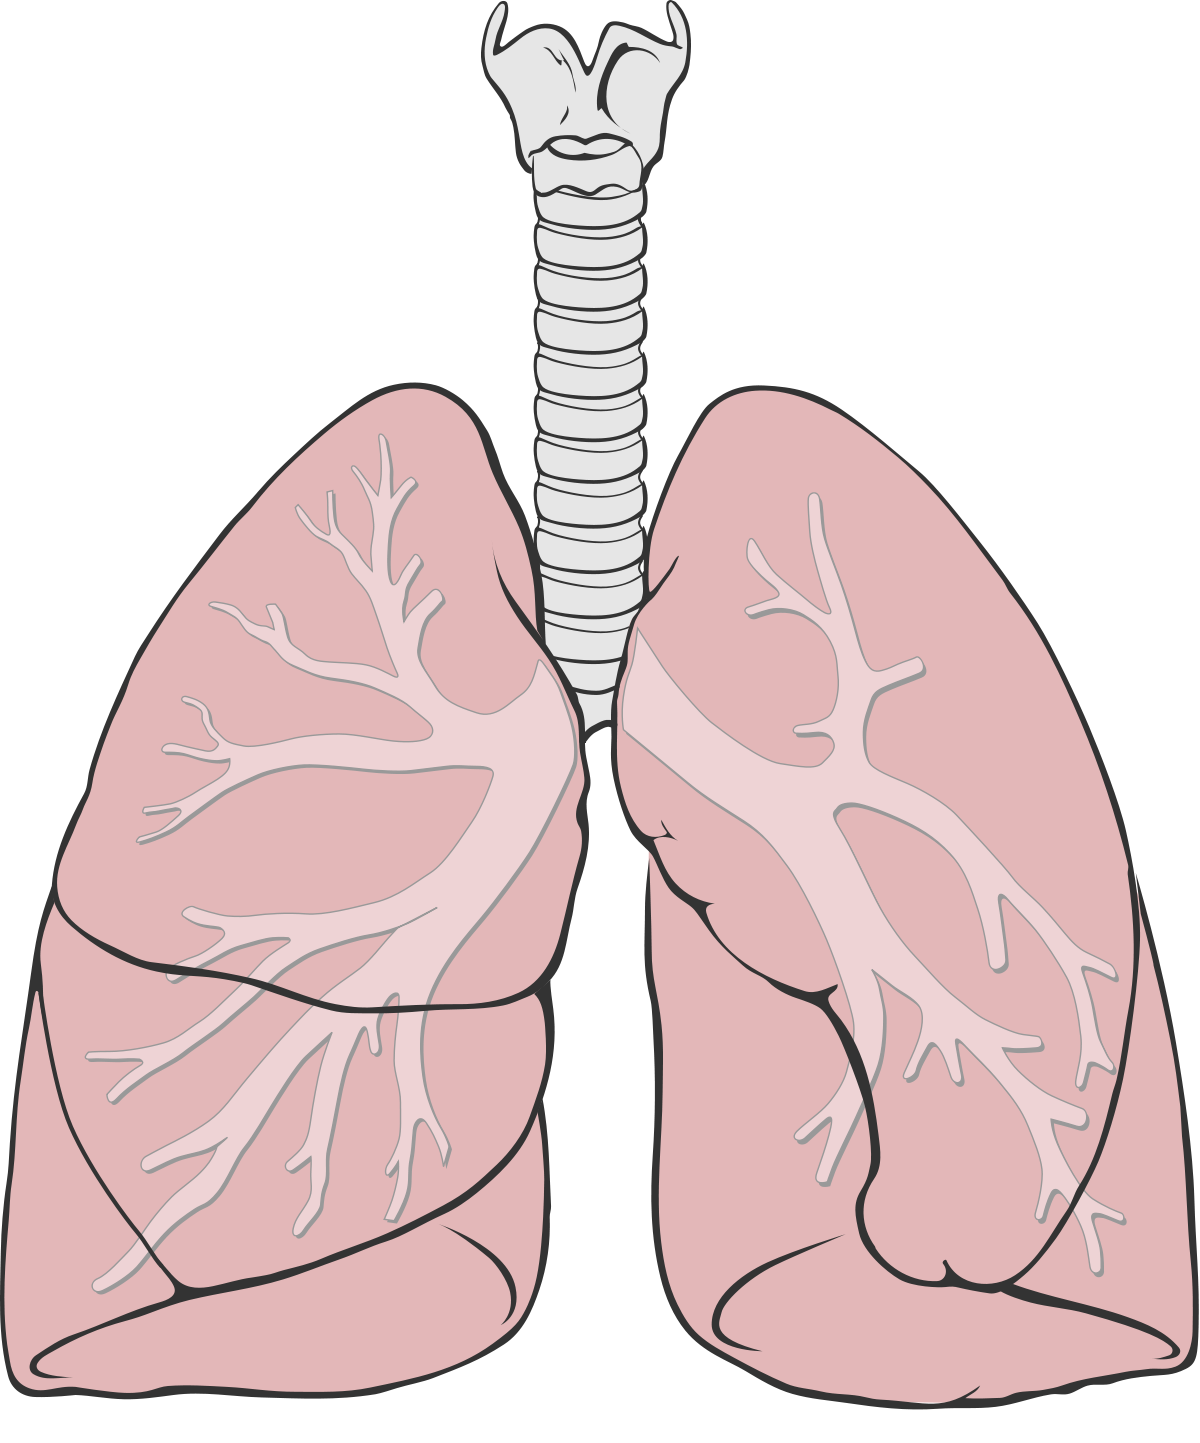 Heart and lungs clipart image free download Mapapu - Wikipedia image free download